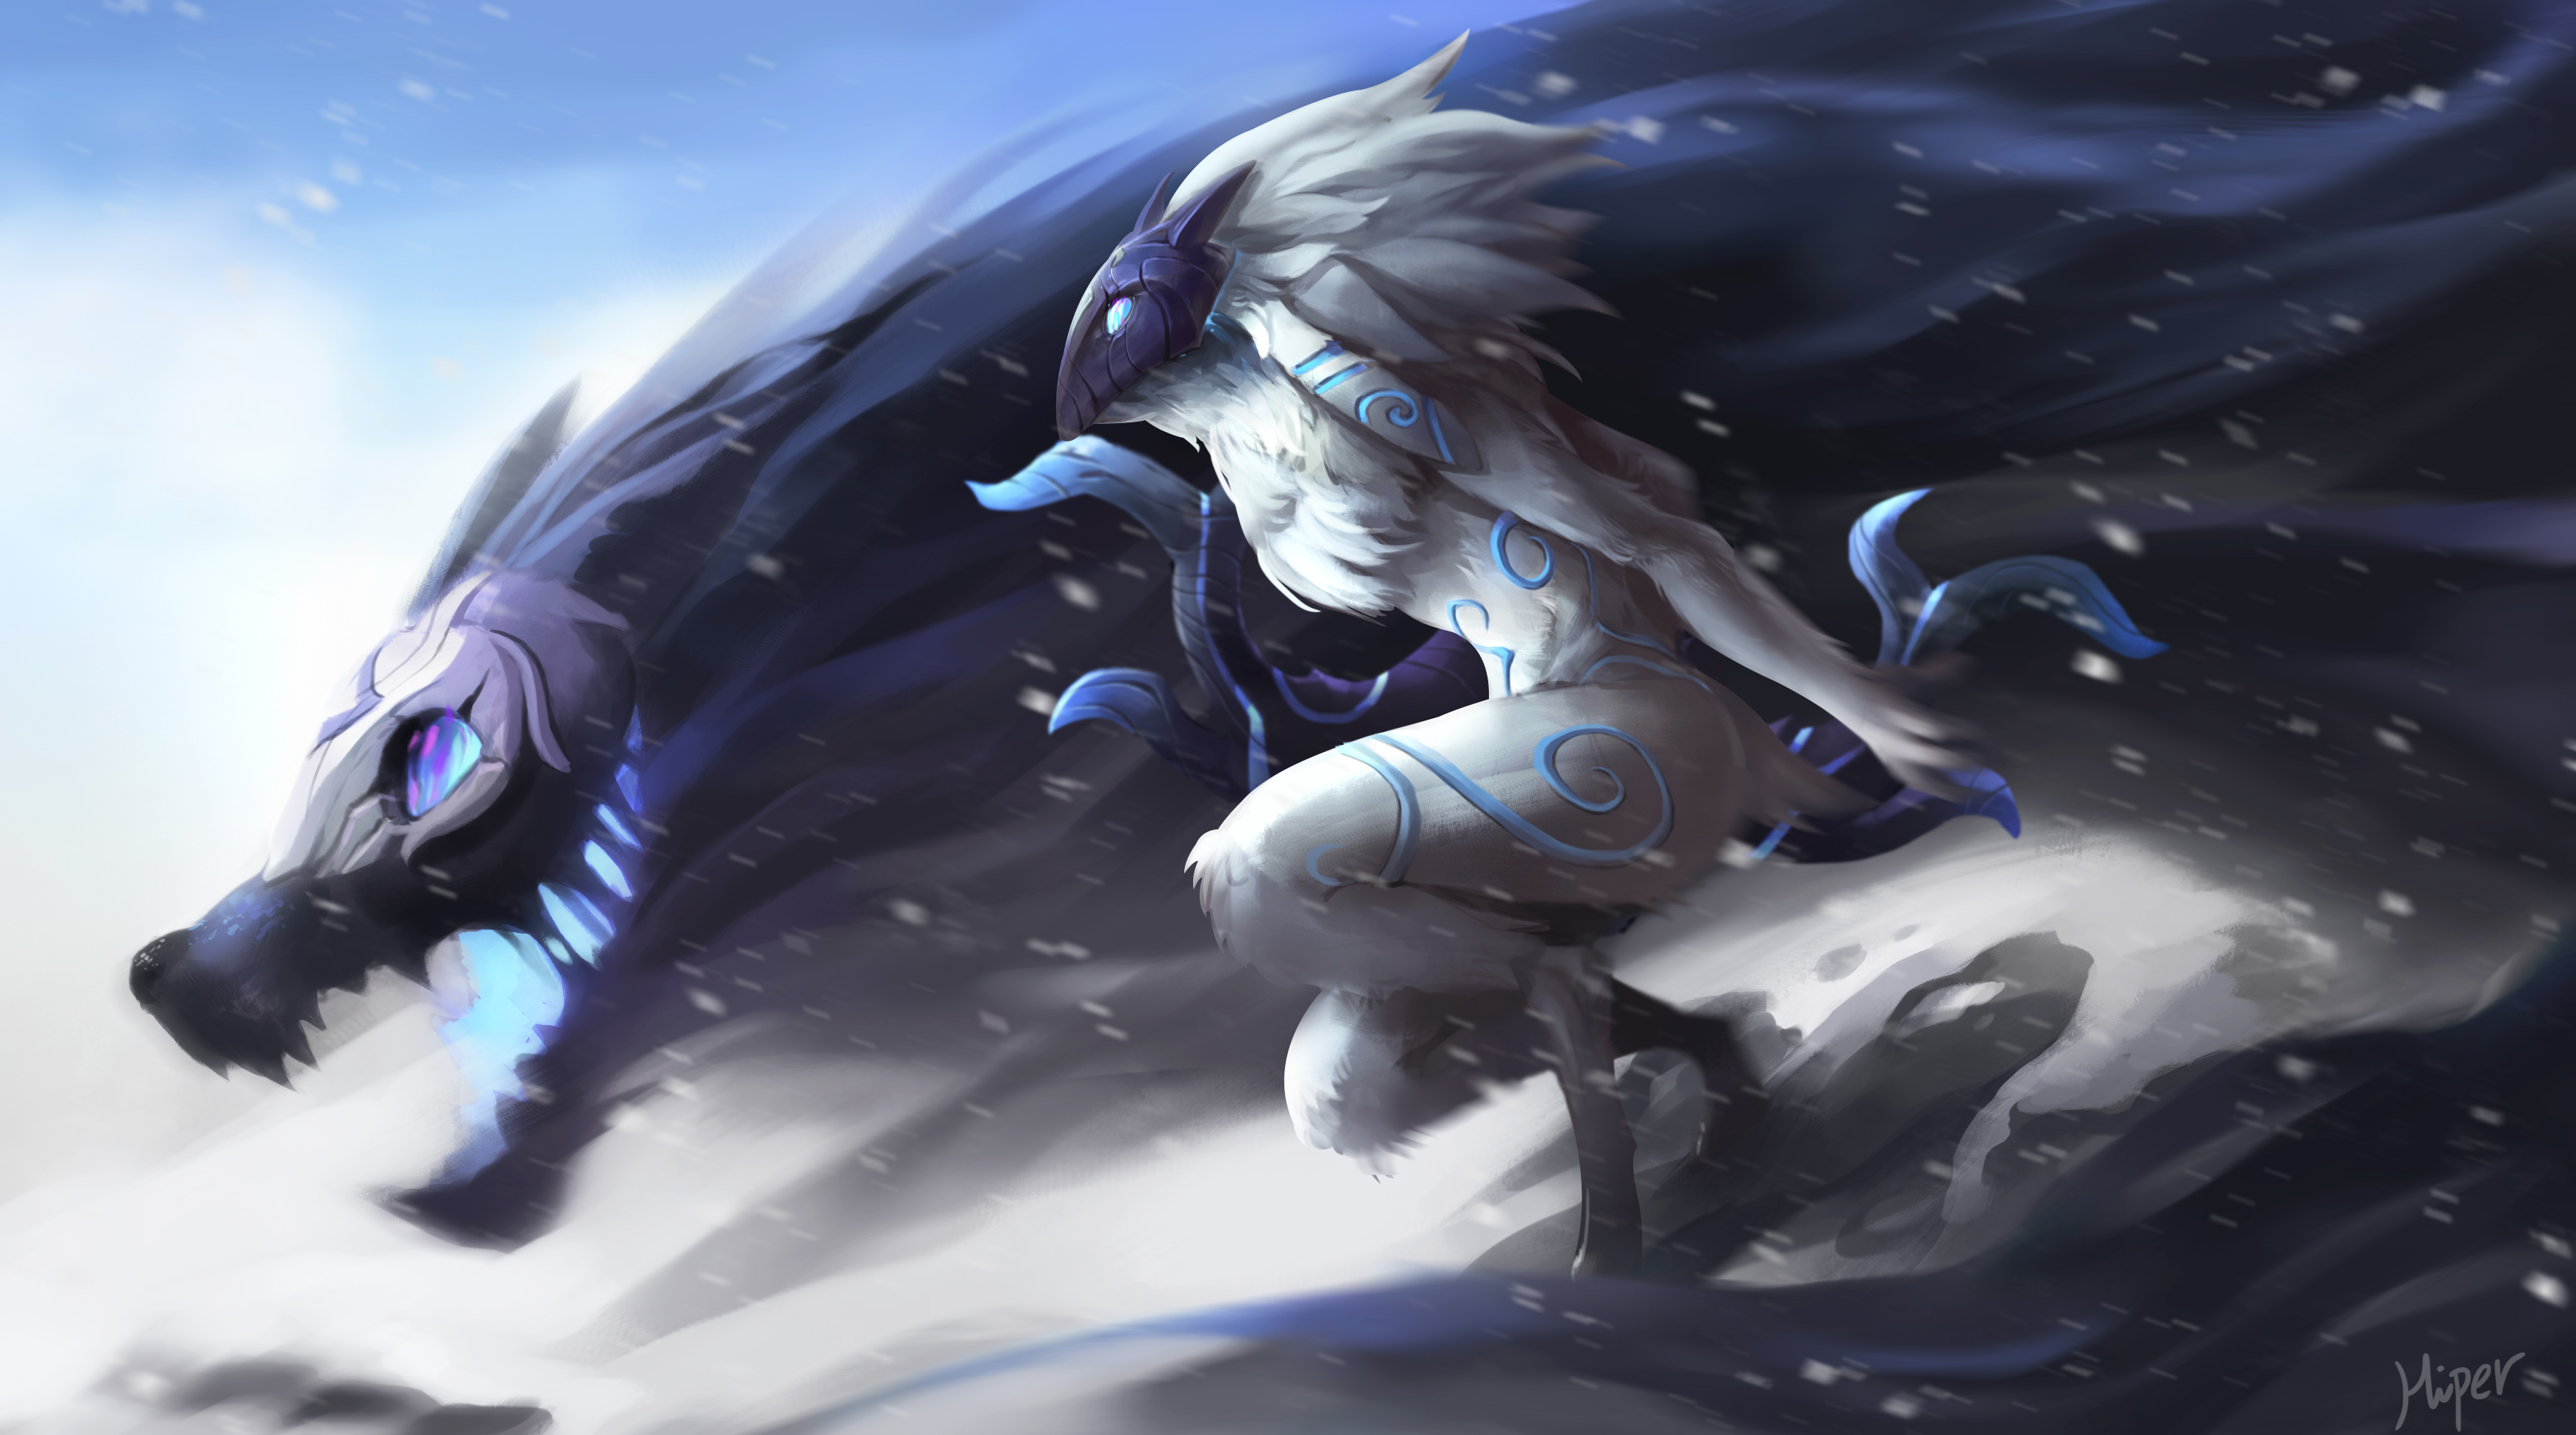 League Of Legends Computer Wallpapers, Desktop Backgrounds | 3500x1950 ...: wall.alphacoders.com/big.php?i=651136